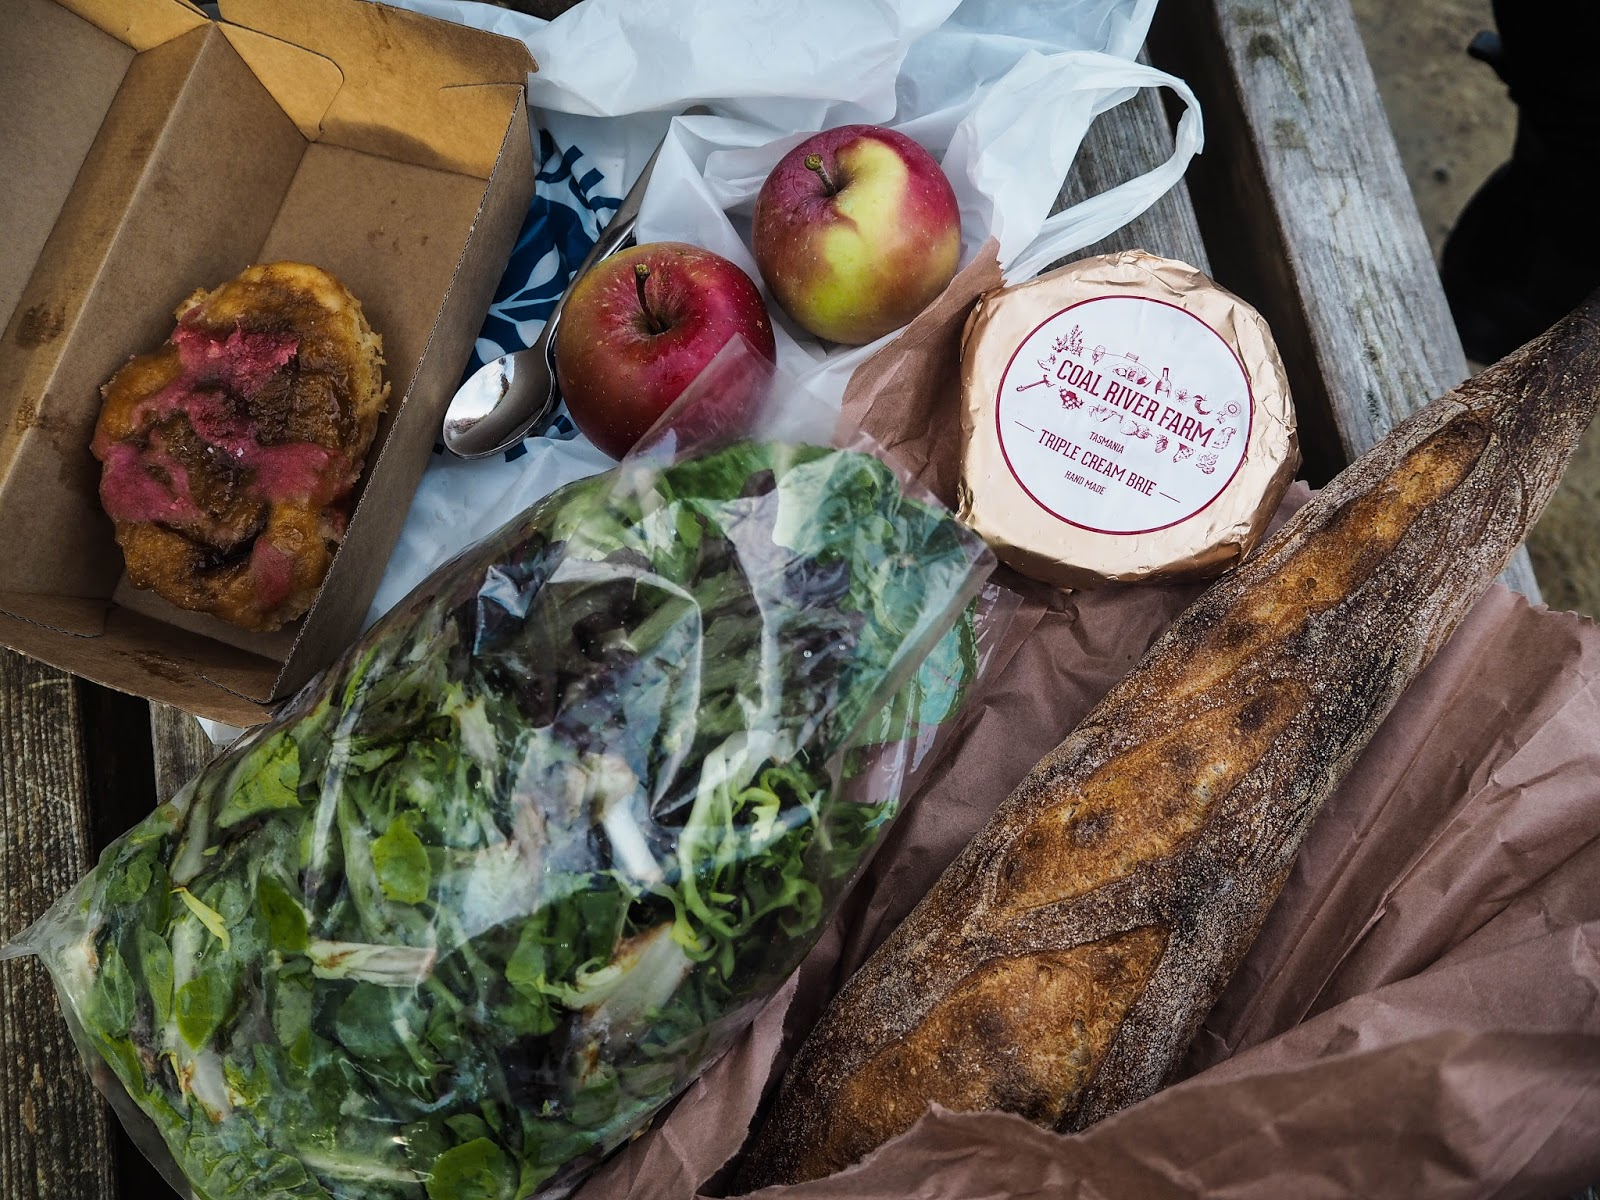 Rhubarb danish, red apples, salad leaves, brie and a french loaf